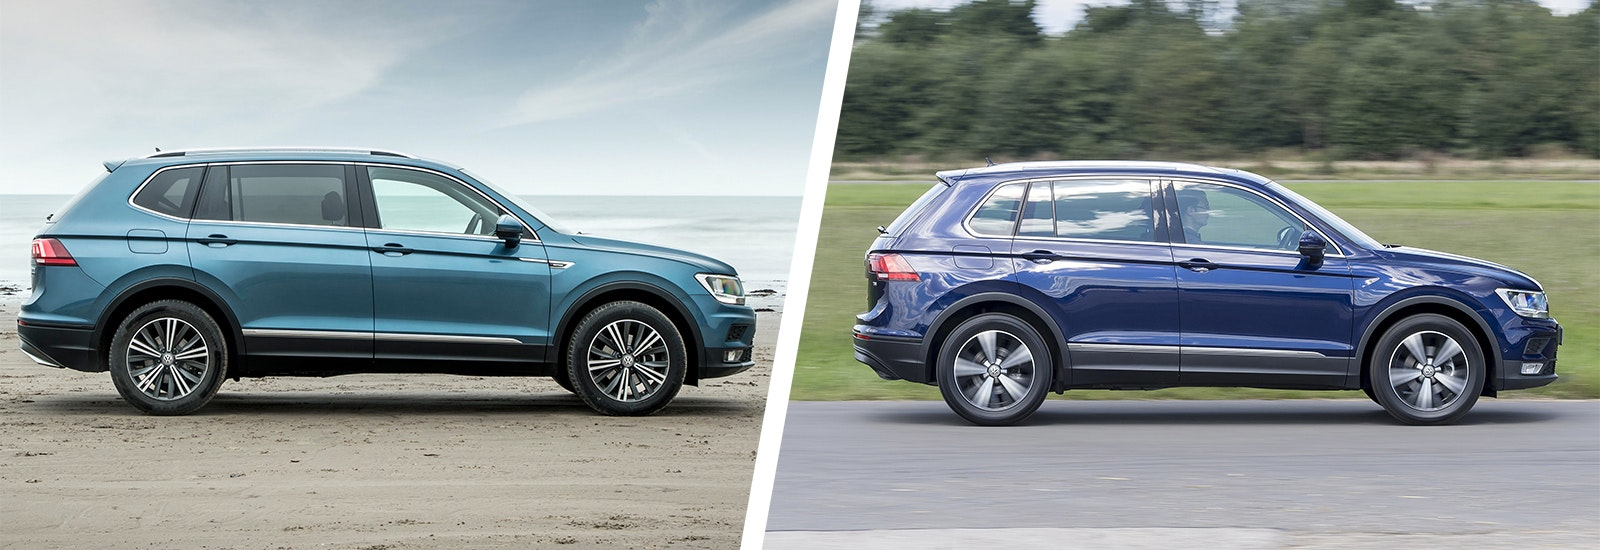 2018 Diesel Suv >> VW Tiguan vs Tiguan Allspace - which is best? | carwow